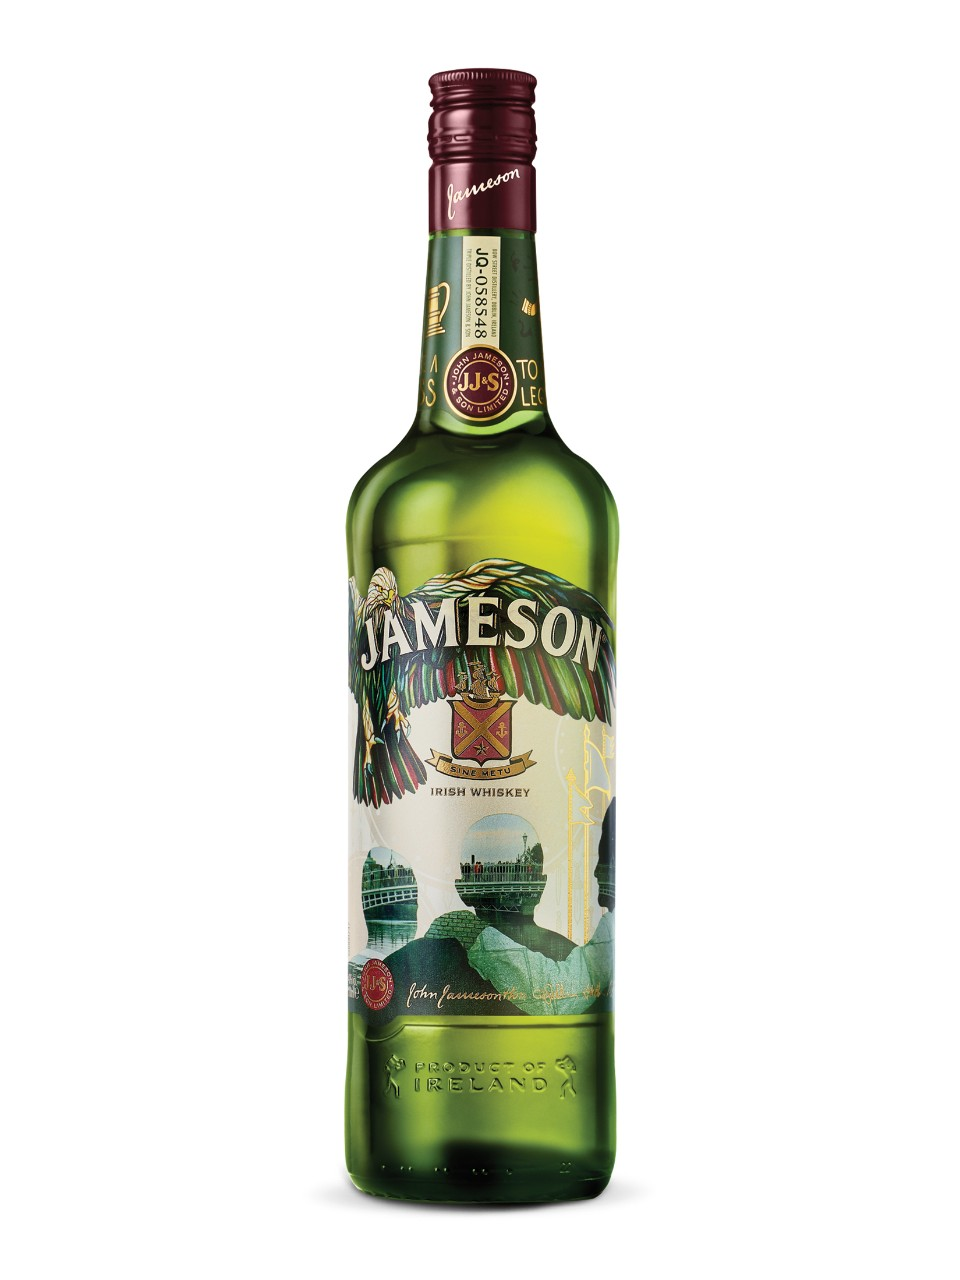 Jameson Irish Whiskey Limited Edition from LCBO